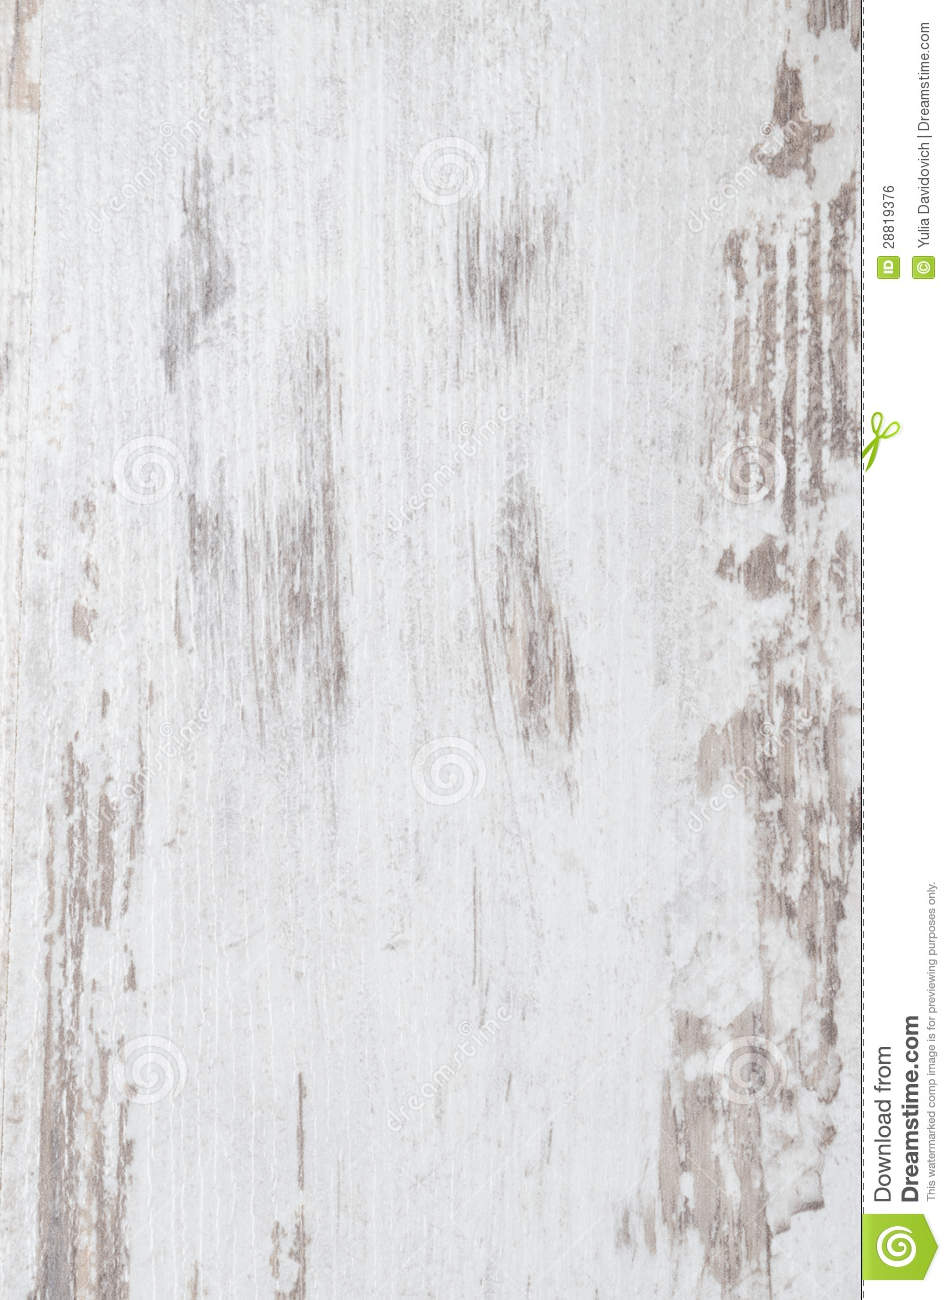 Wooden Texture, White Wood Background Royalty Free Stock Image - Image ...